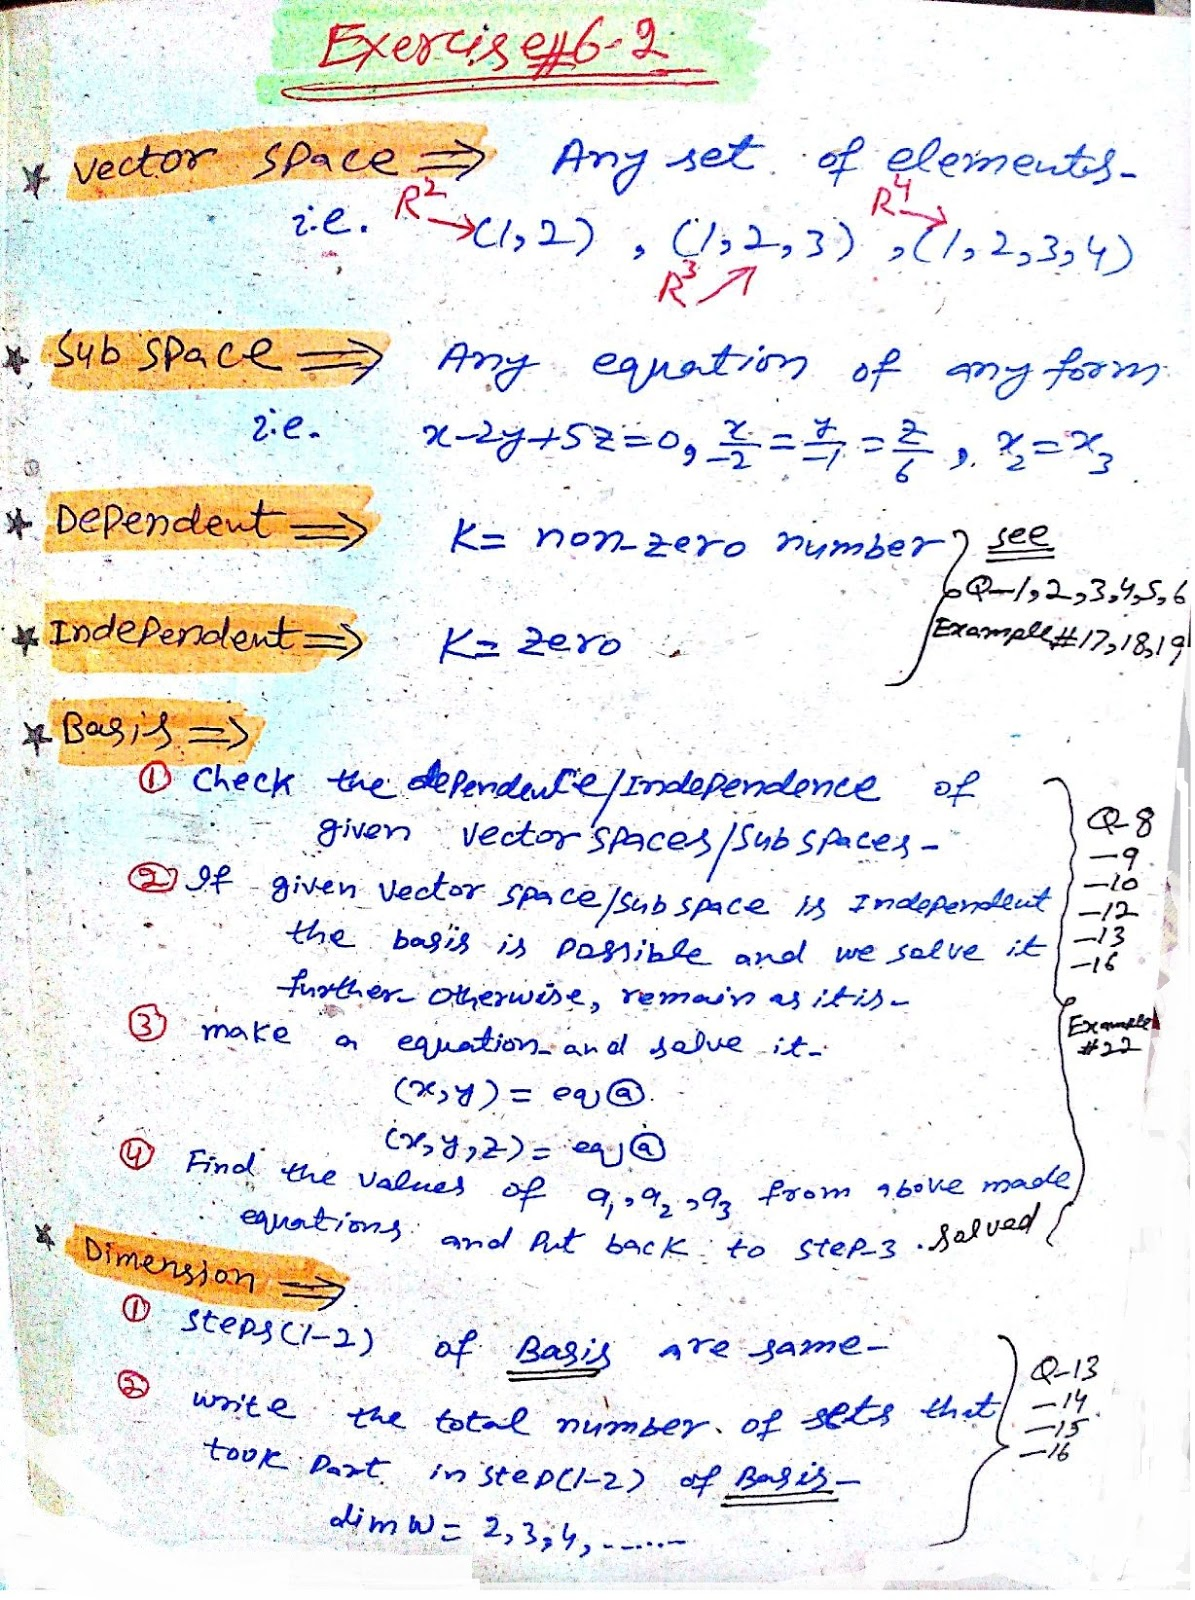 mathematical methods by sm yusuf solved pdf free download,mathematical methods by sm yusuf pdf,mathematical methods by sm yousuf solved pdf free download,mathematical methods by sm yusuf chapter 10,mathematical methods by sm yusuf book pdf,mathematical methods by sm yusuf book free download pdf,mathematical methods by sm yusuf chapter 4,bsc calculus notes chapter 9,mathematical methods by sm yusuf chapter 4,mathematical methods by sm yusuf chapter 10,bsc math notes method chapter 10,mathematical methods by sm yusuf chapter 9 solved,mathematical methods notes chapter 10,bsc math notes pdf,mathematical methods by sm yusuf chapter 10 solved,calculus and analytic geometry by sm yusuf pdf free download